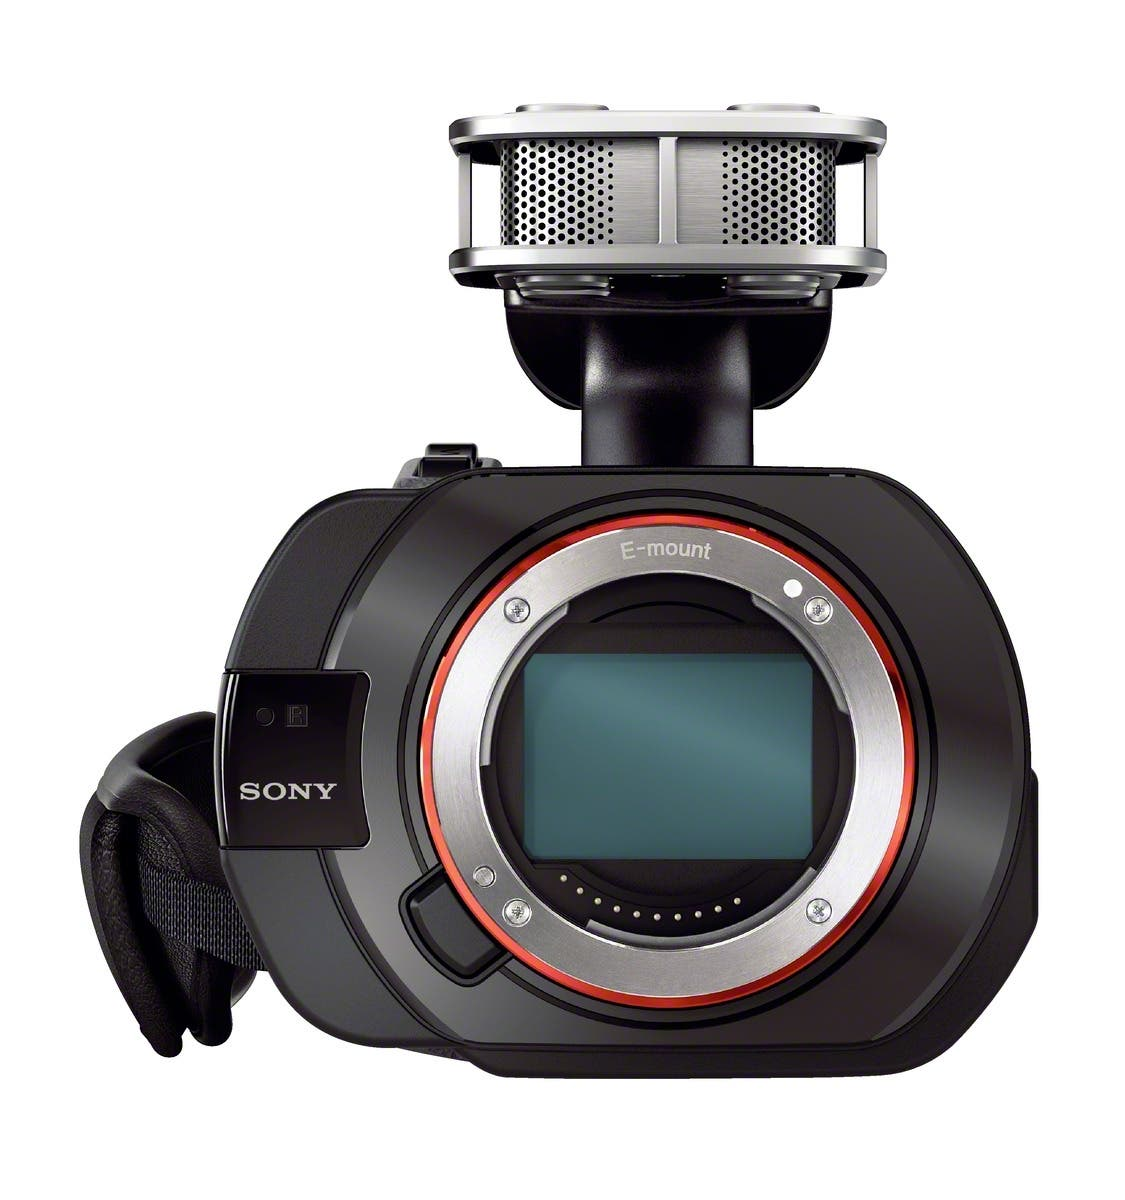 E-Mount Goes Full-Frame With The New VG900